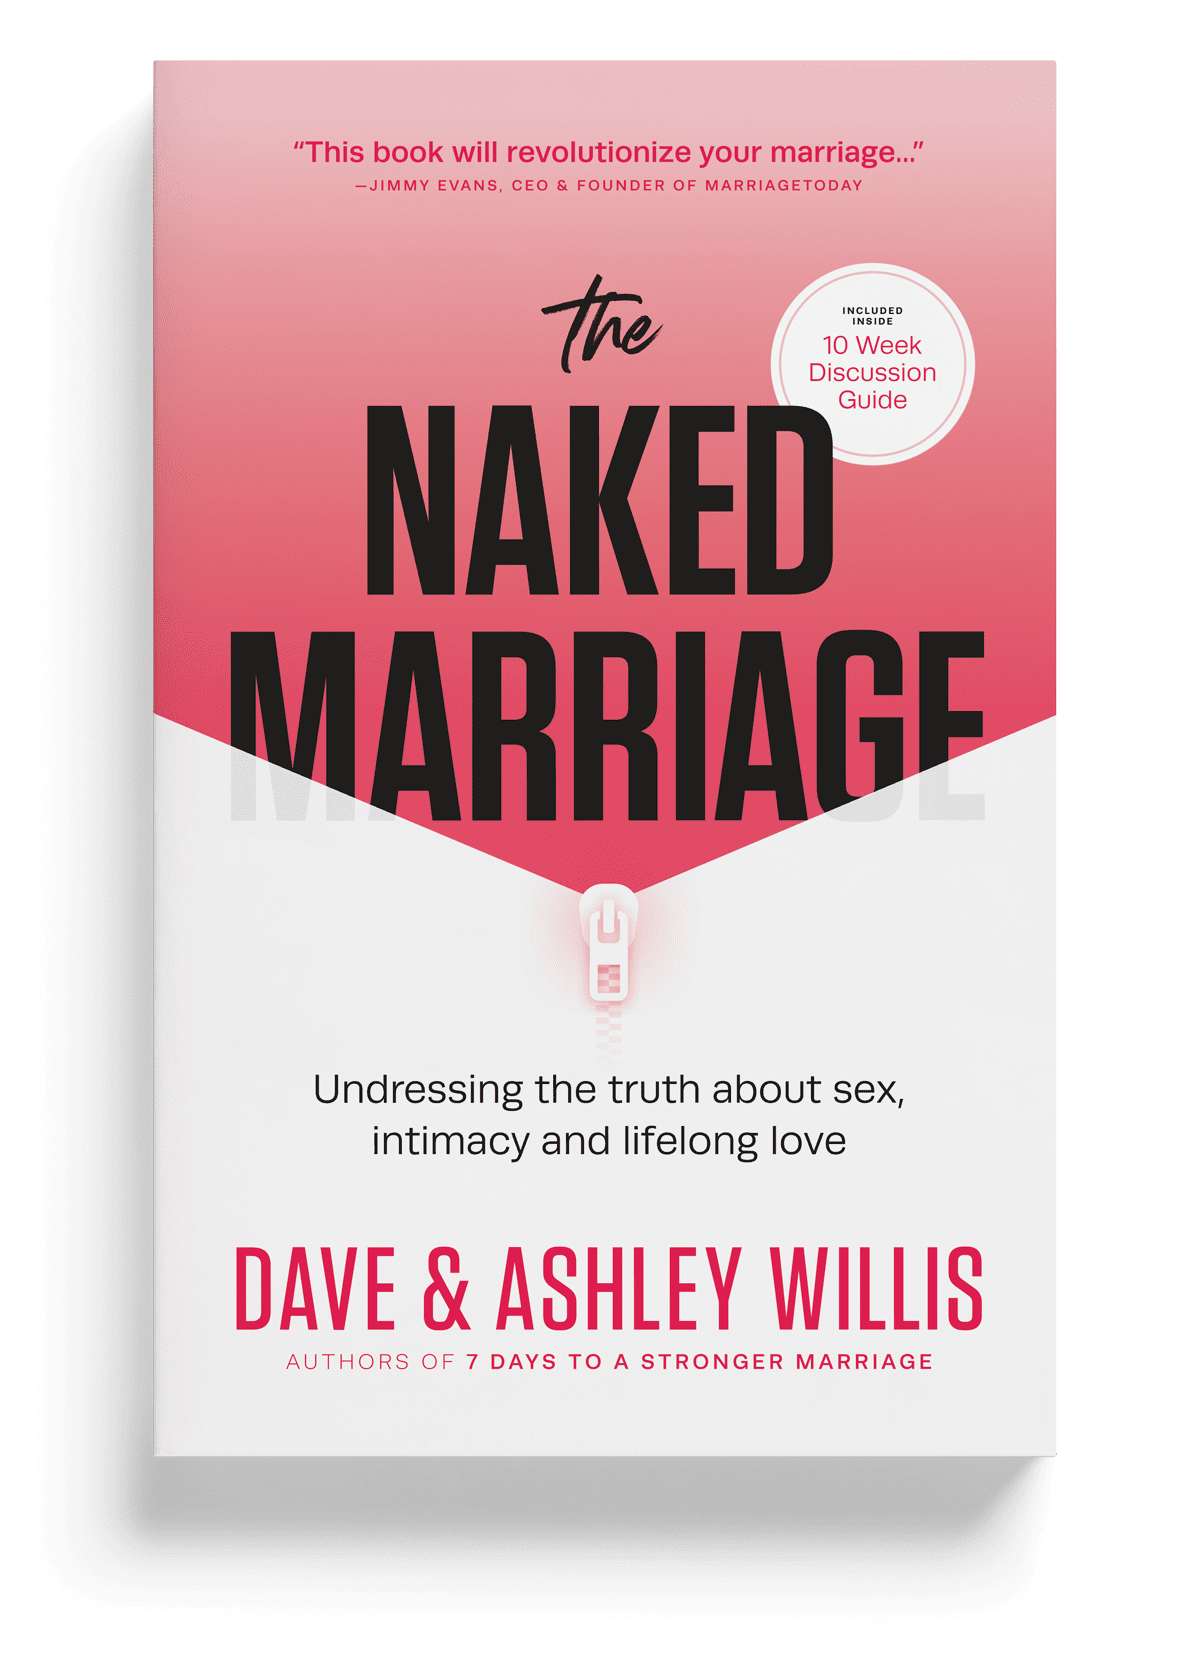 The Naked Marriage Book Cover